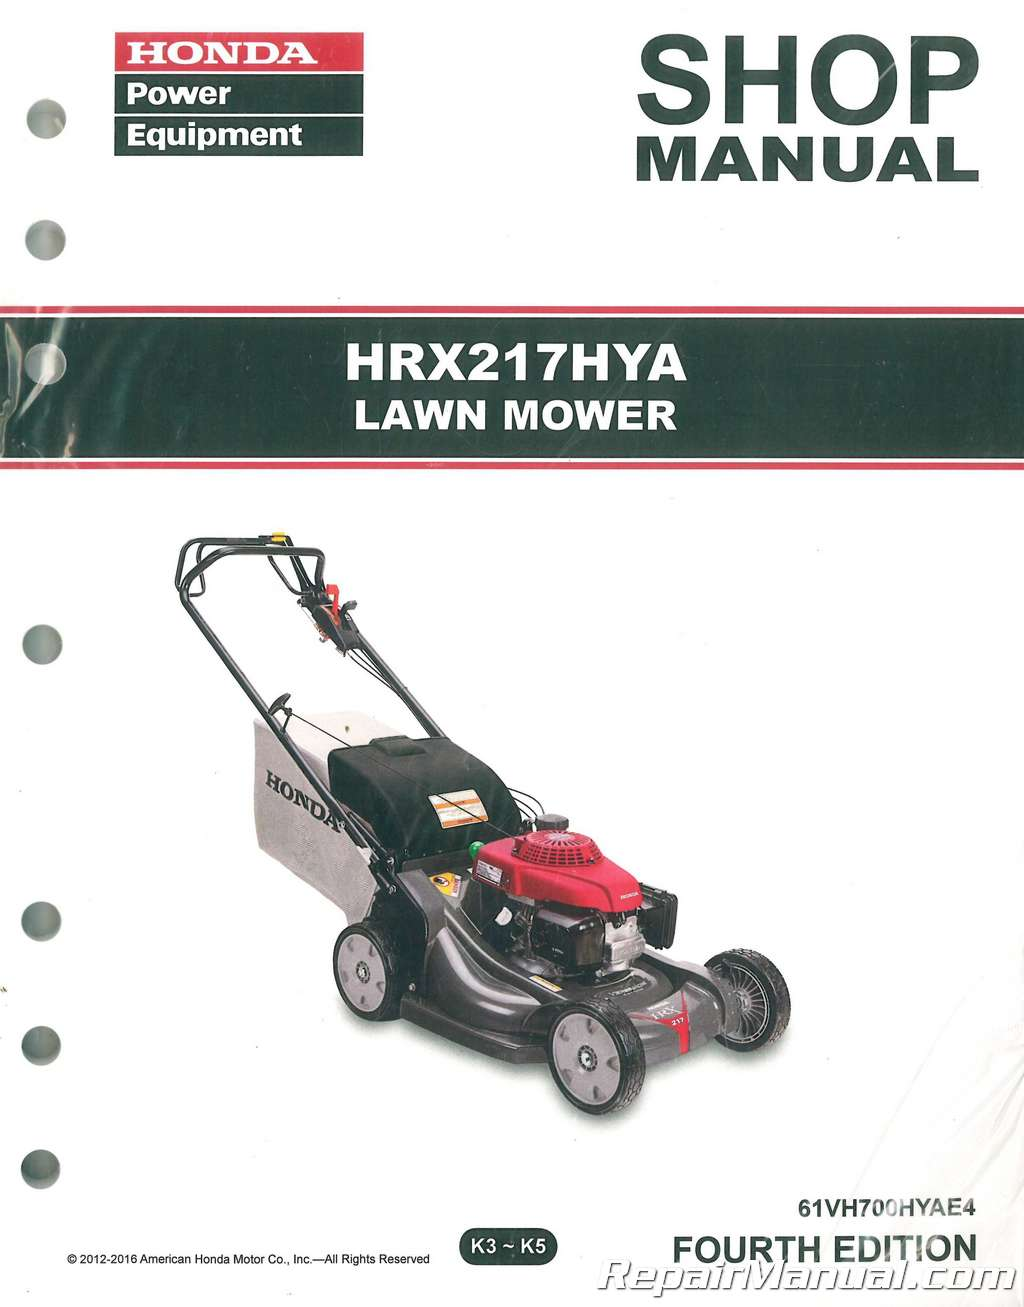 honda hrx217 hya lawn mower repair service shop manual rh repairmanual com honda mower manual hrr216vya honda mower manual hrx 217